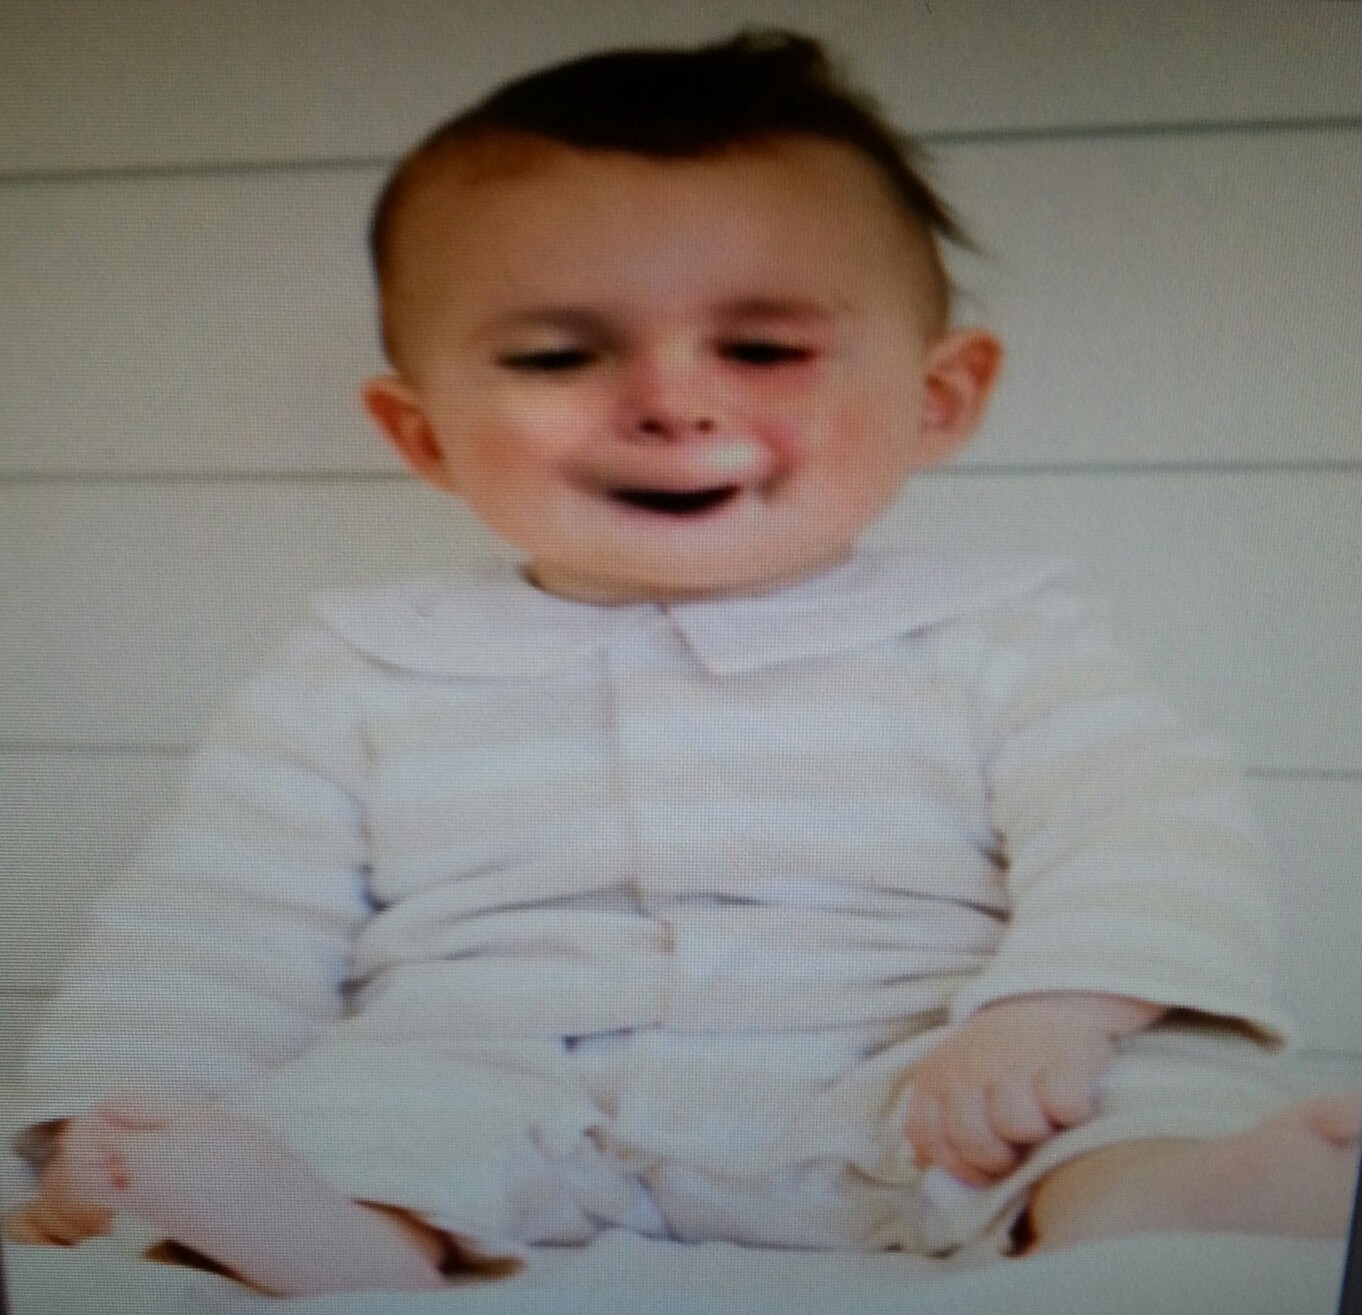 Found B's lost baby pic.....lol